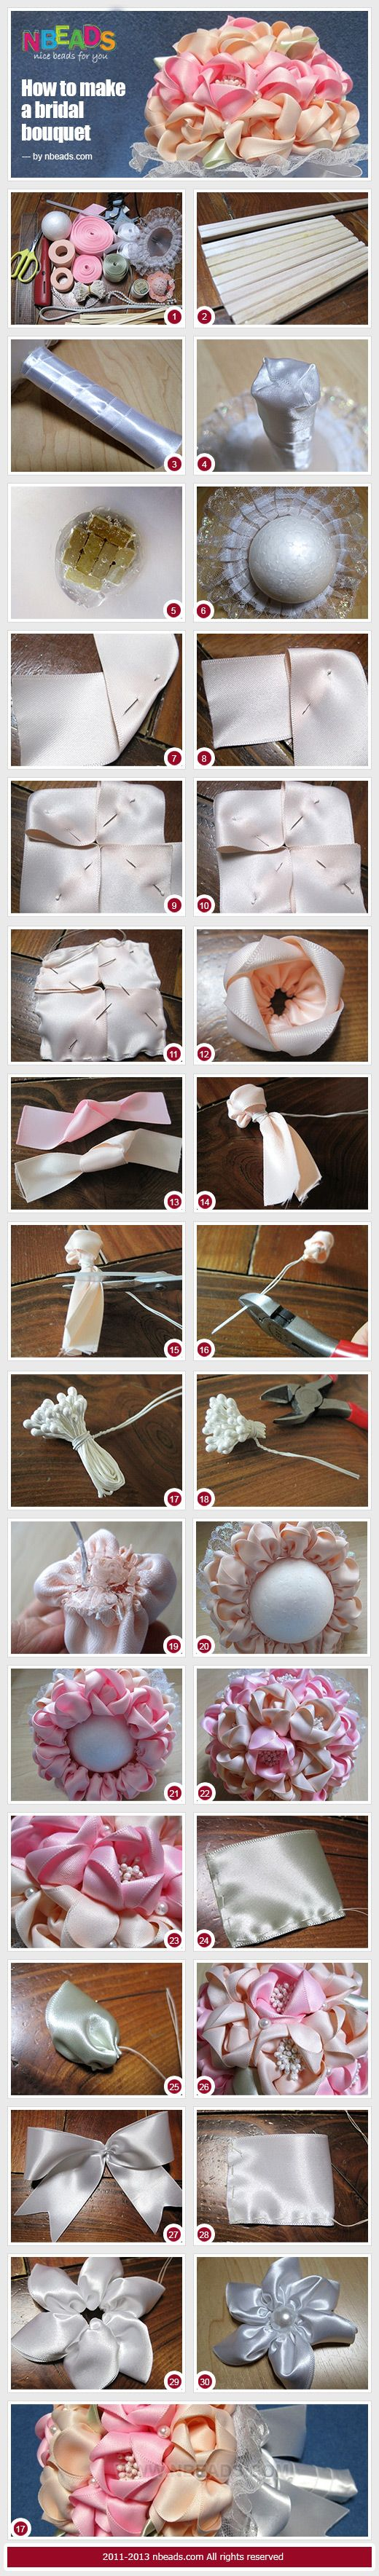 how to make a bouquet http://www.nbeads.com/article-how-to-make-a-bridal-bouquet-718.html